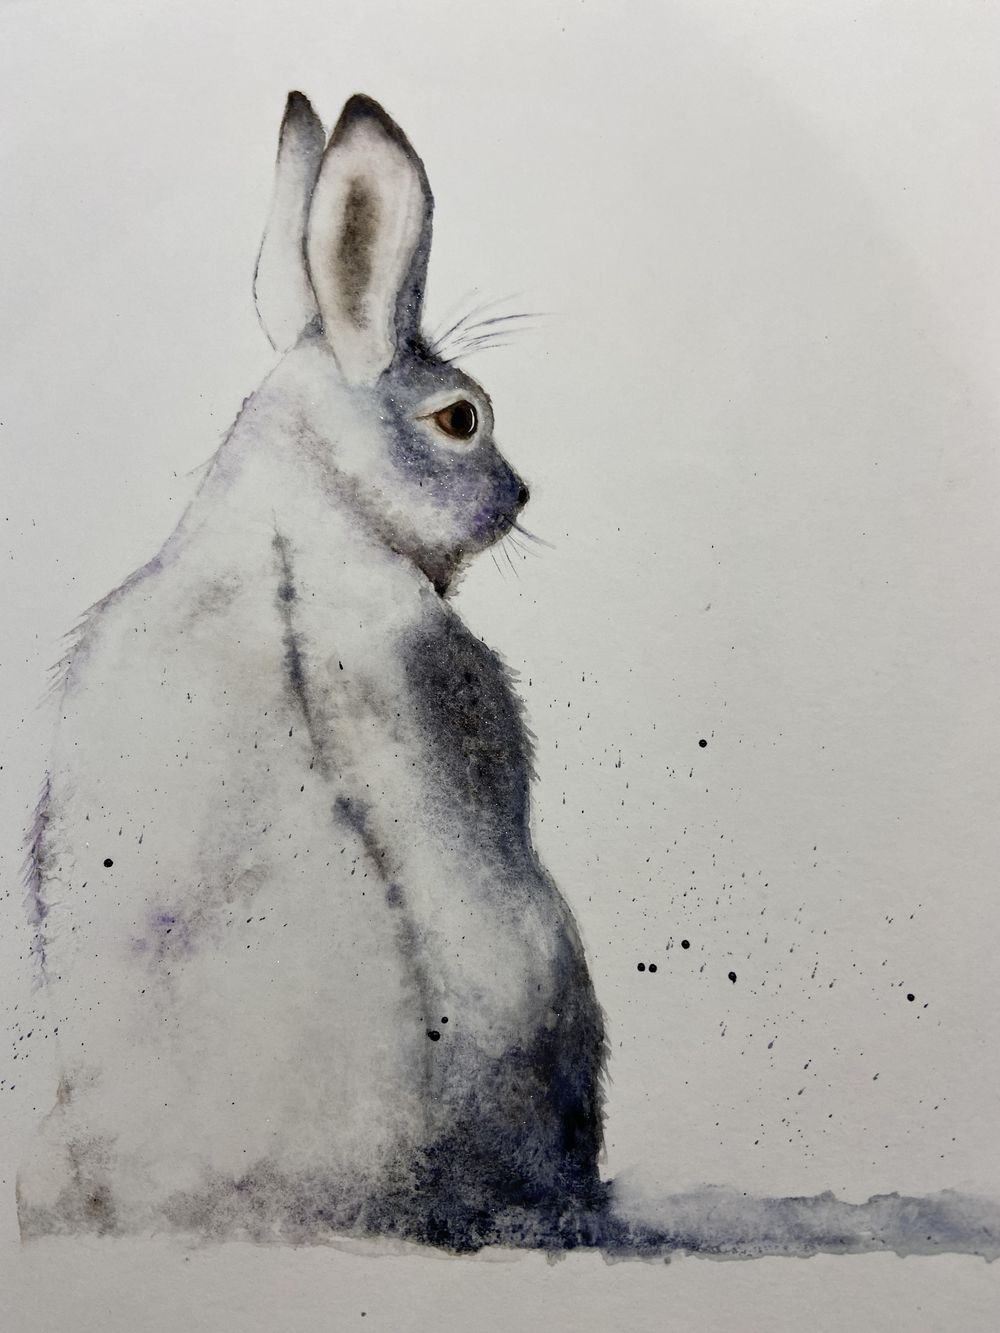 Snow hare - image 1 - student project